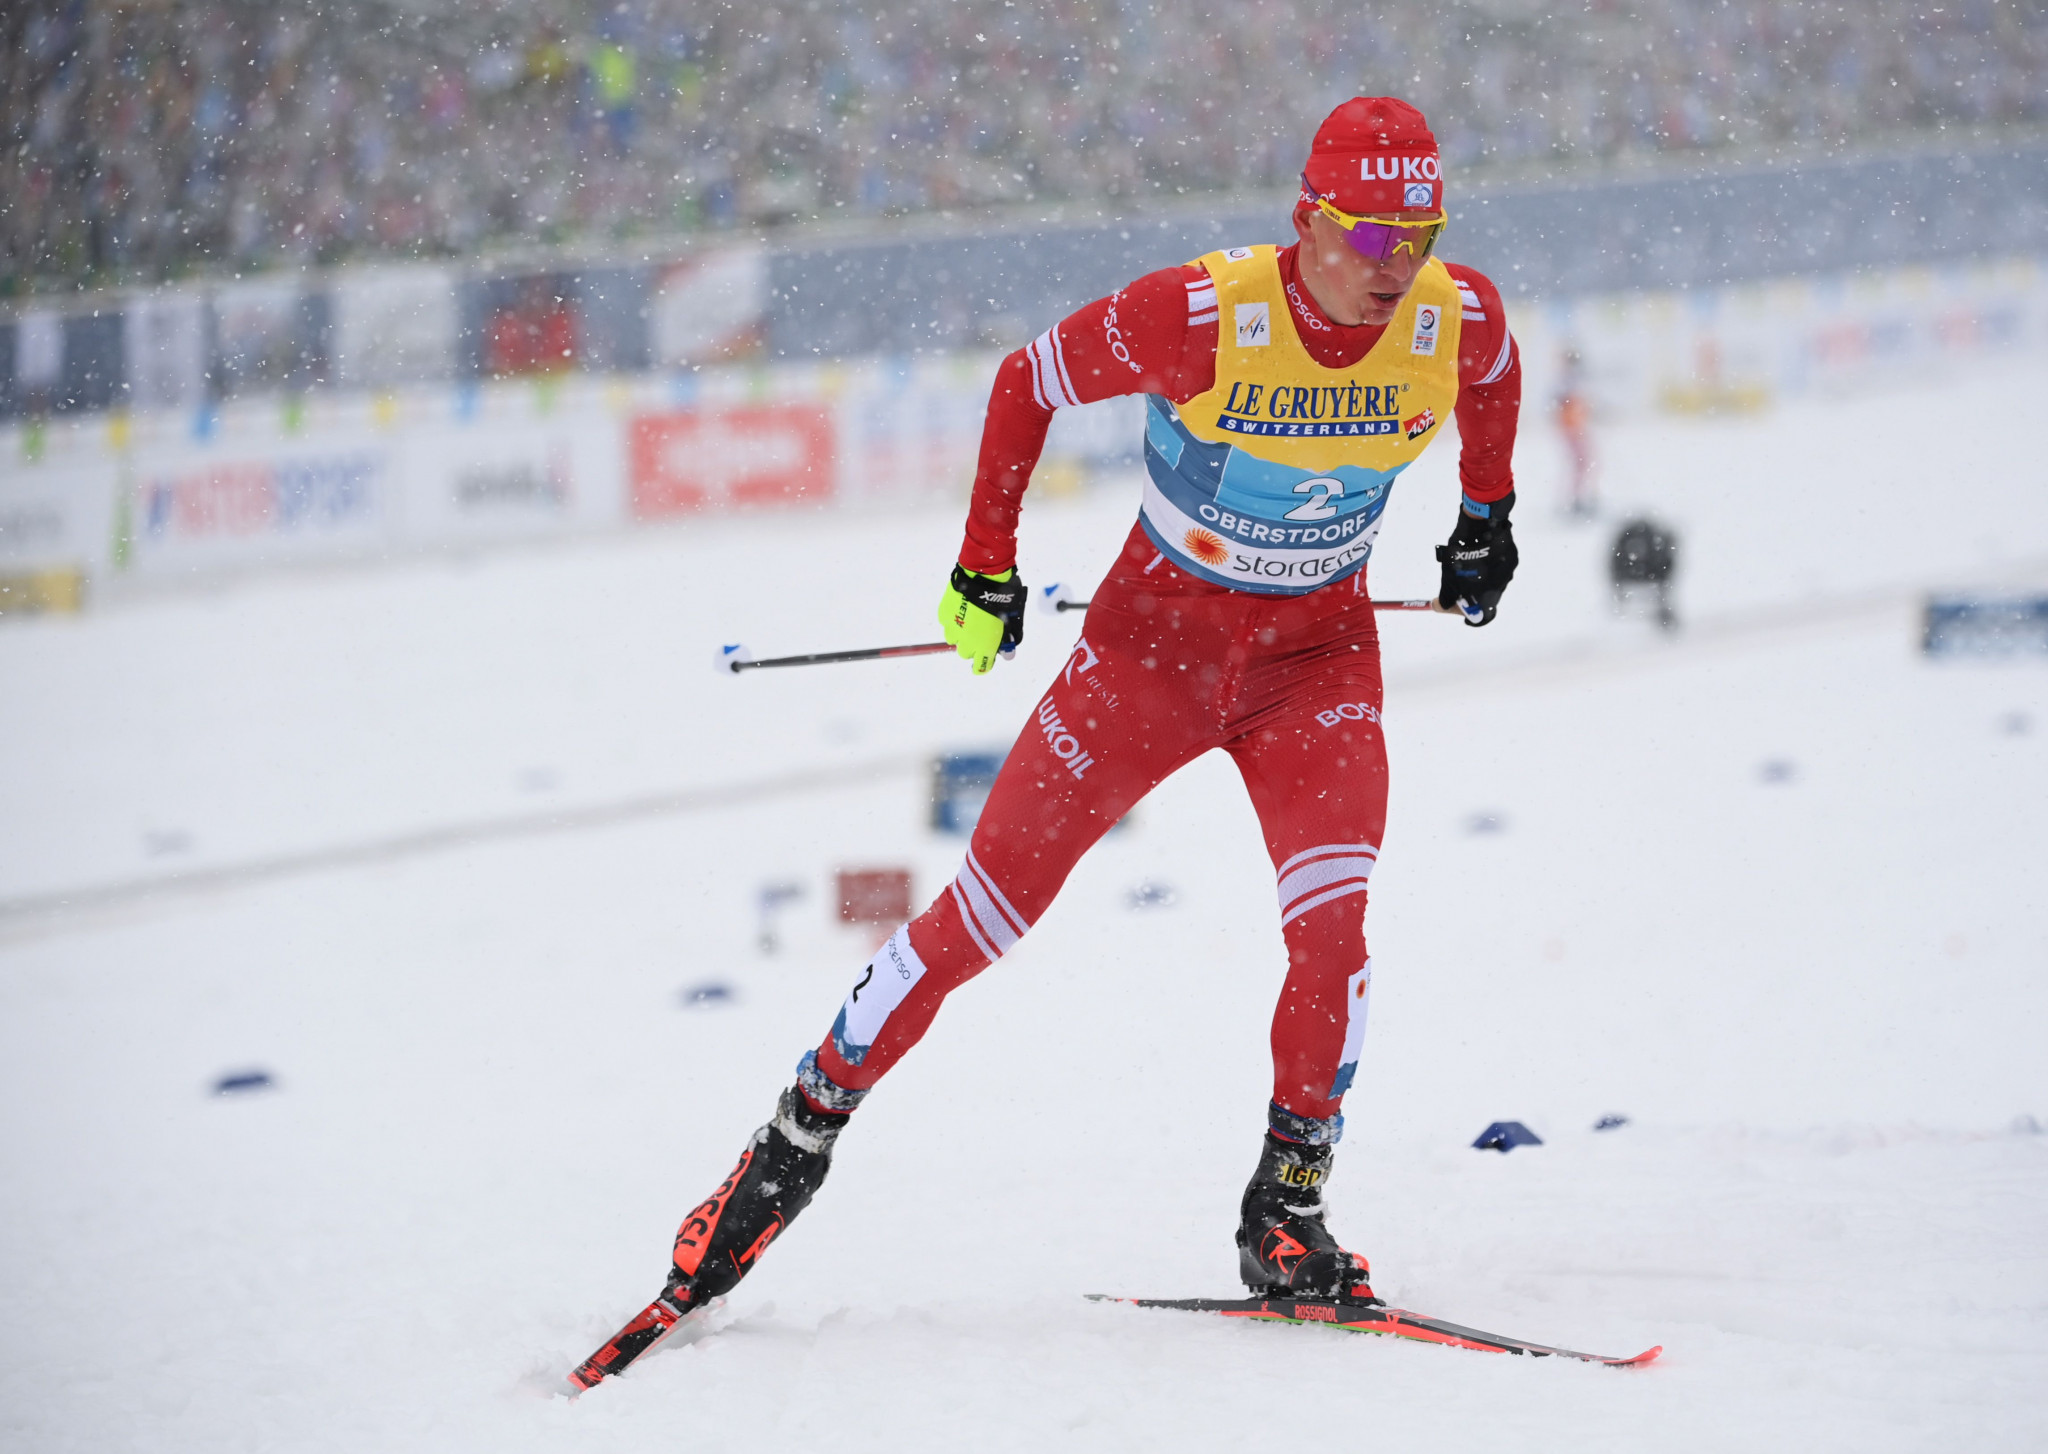 Bolshunov and Stupak triumph at FIS Cross-Country World Cup in Engadin